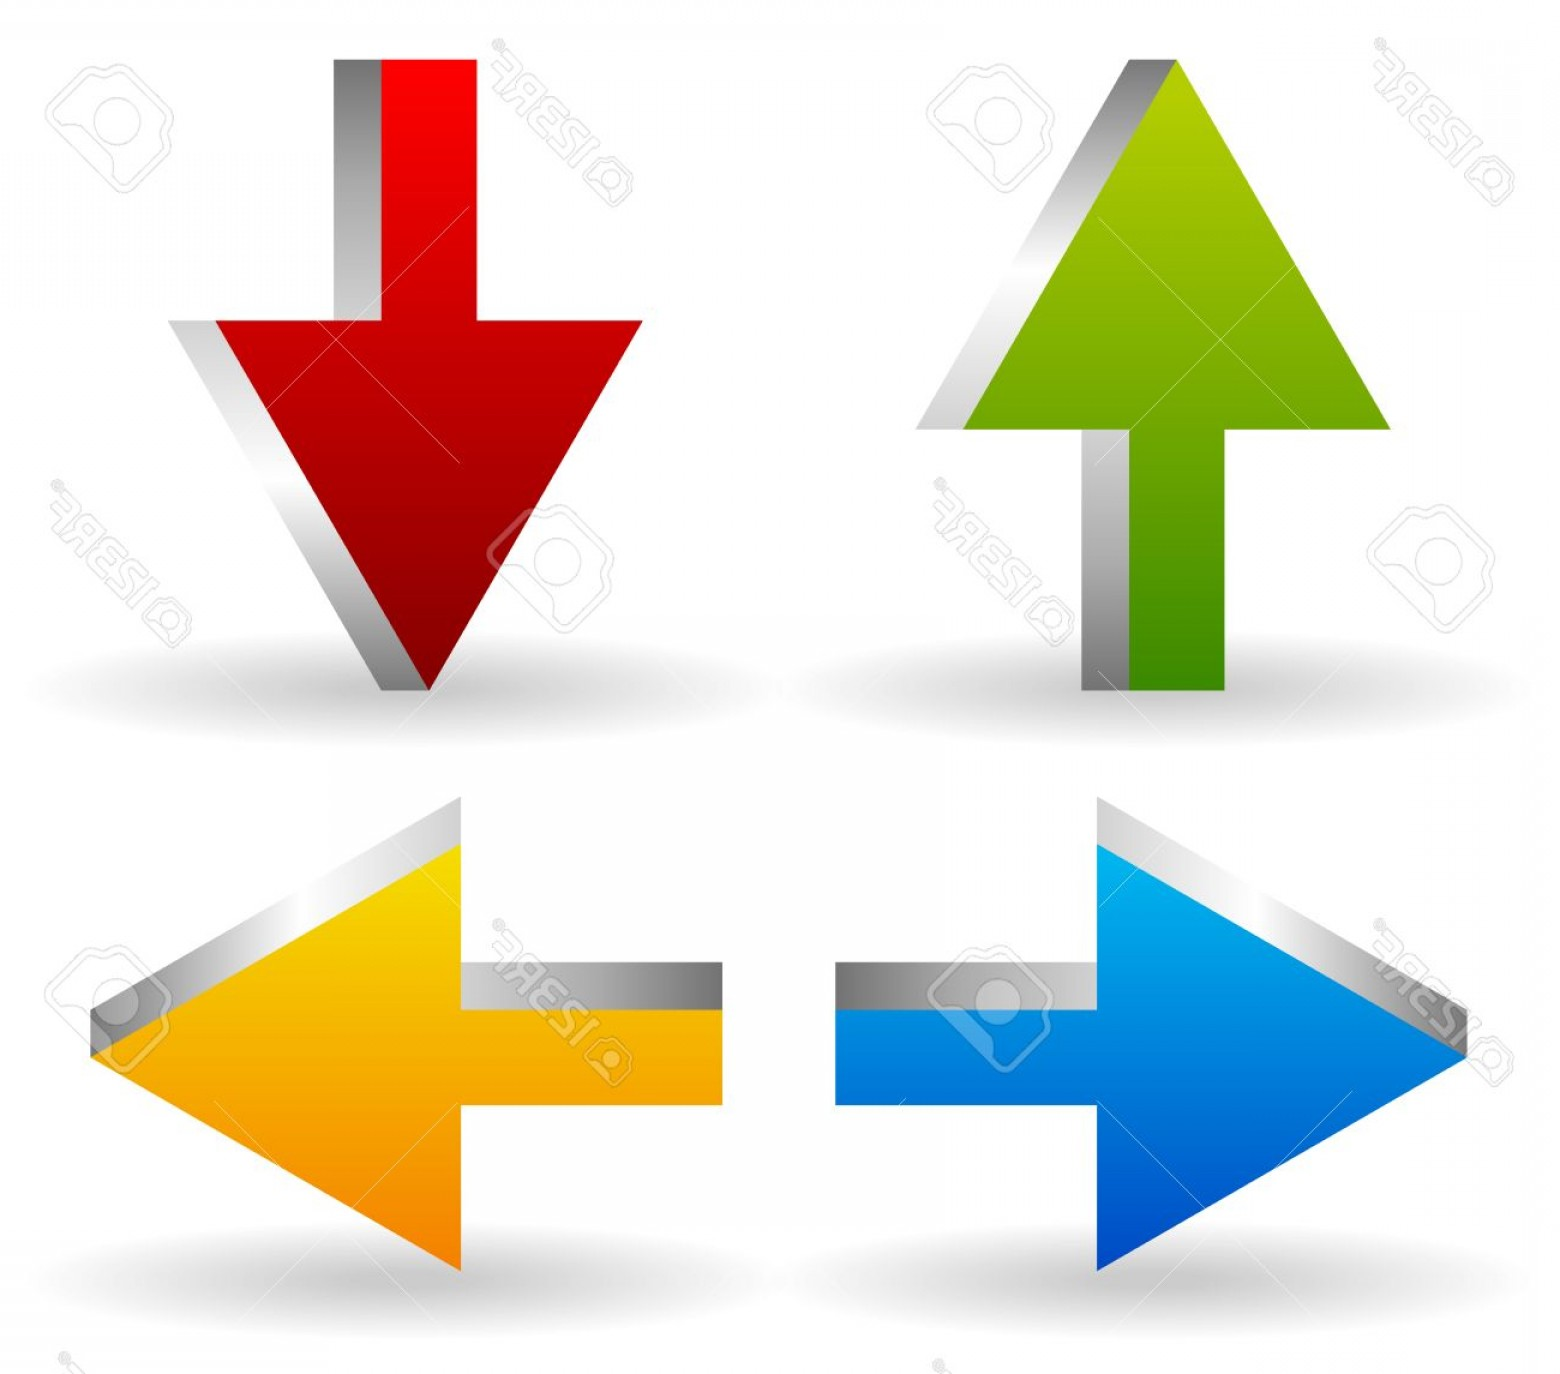 Up And Right Arrows Vector: Photostock Vector Vector Illustration Of Bright D Arrows Arrow Icons Pointing Up Down Left And Right Green Red Blue A